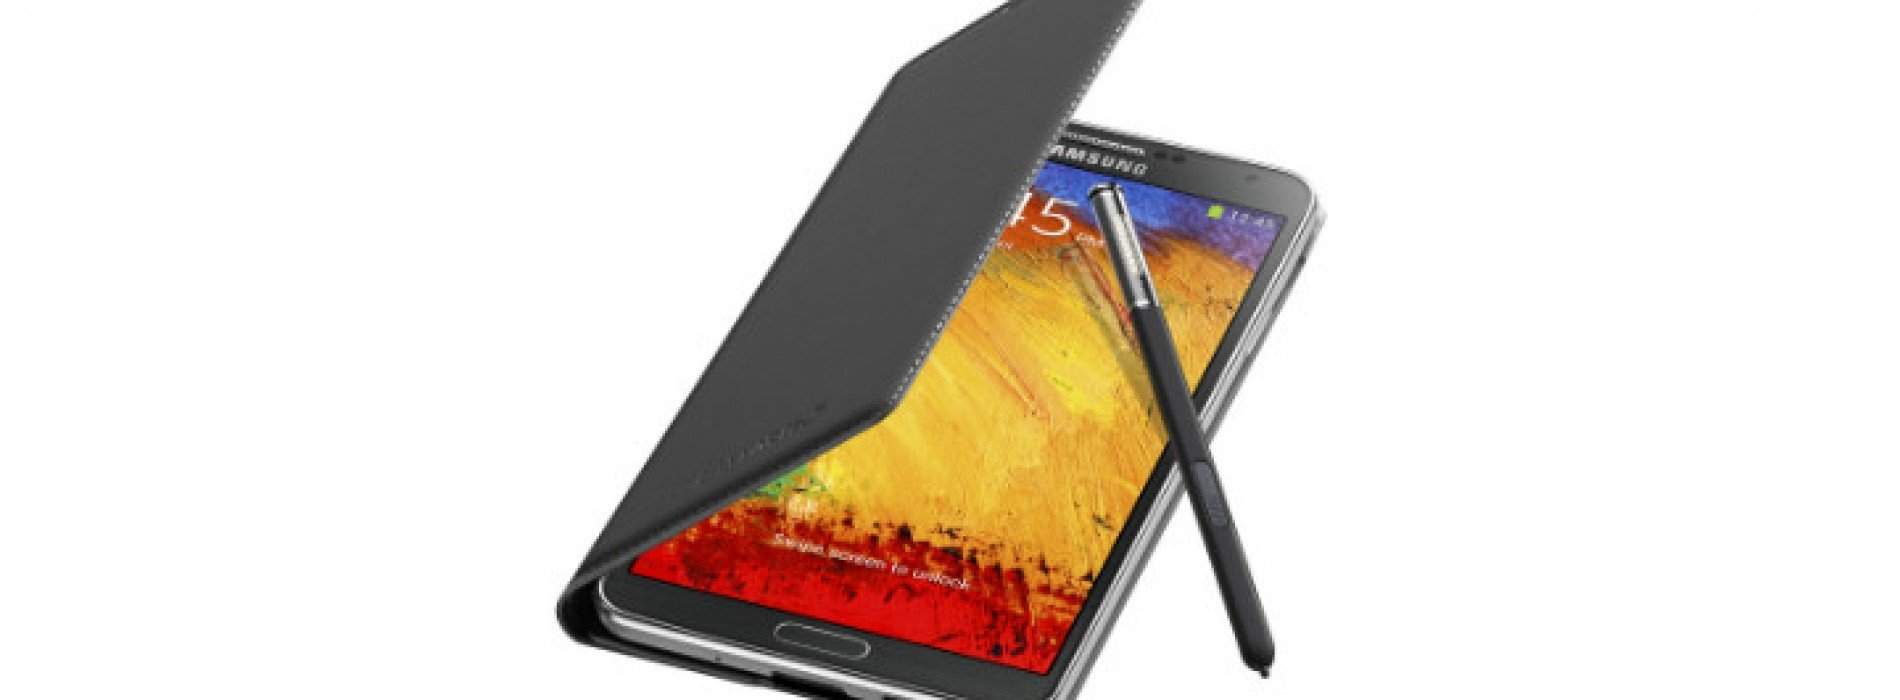 T-Mobile's Galaxy Note 3 pre-orders set for September 18